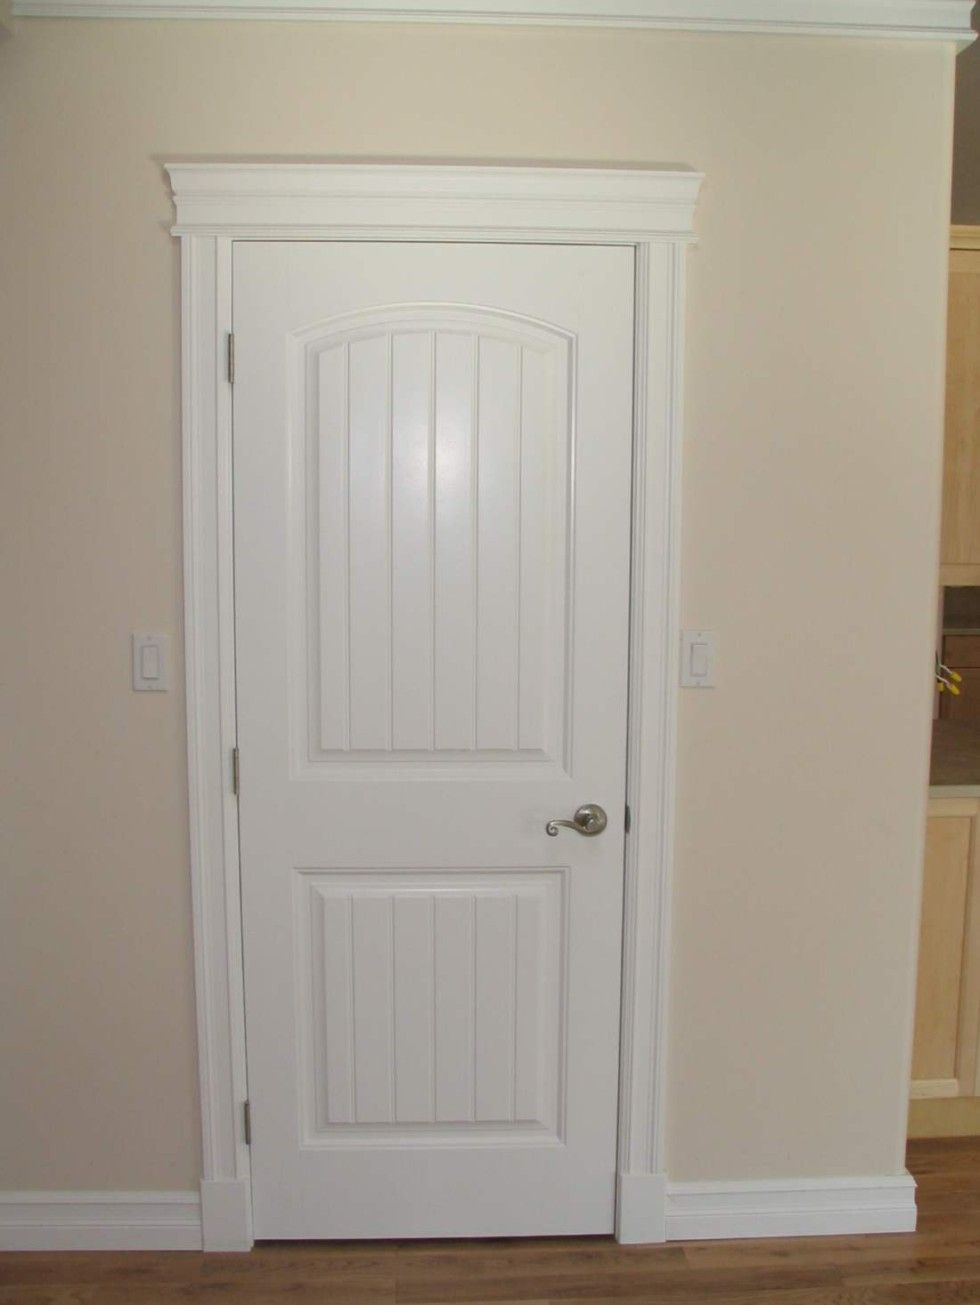 Door casing and window trim installation by deacon home enhancement - Casing Door Amp Fastening Door Casing With Finishing Nails